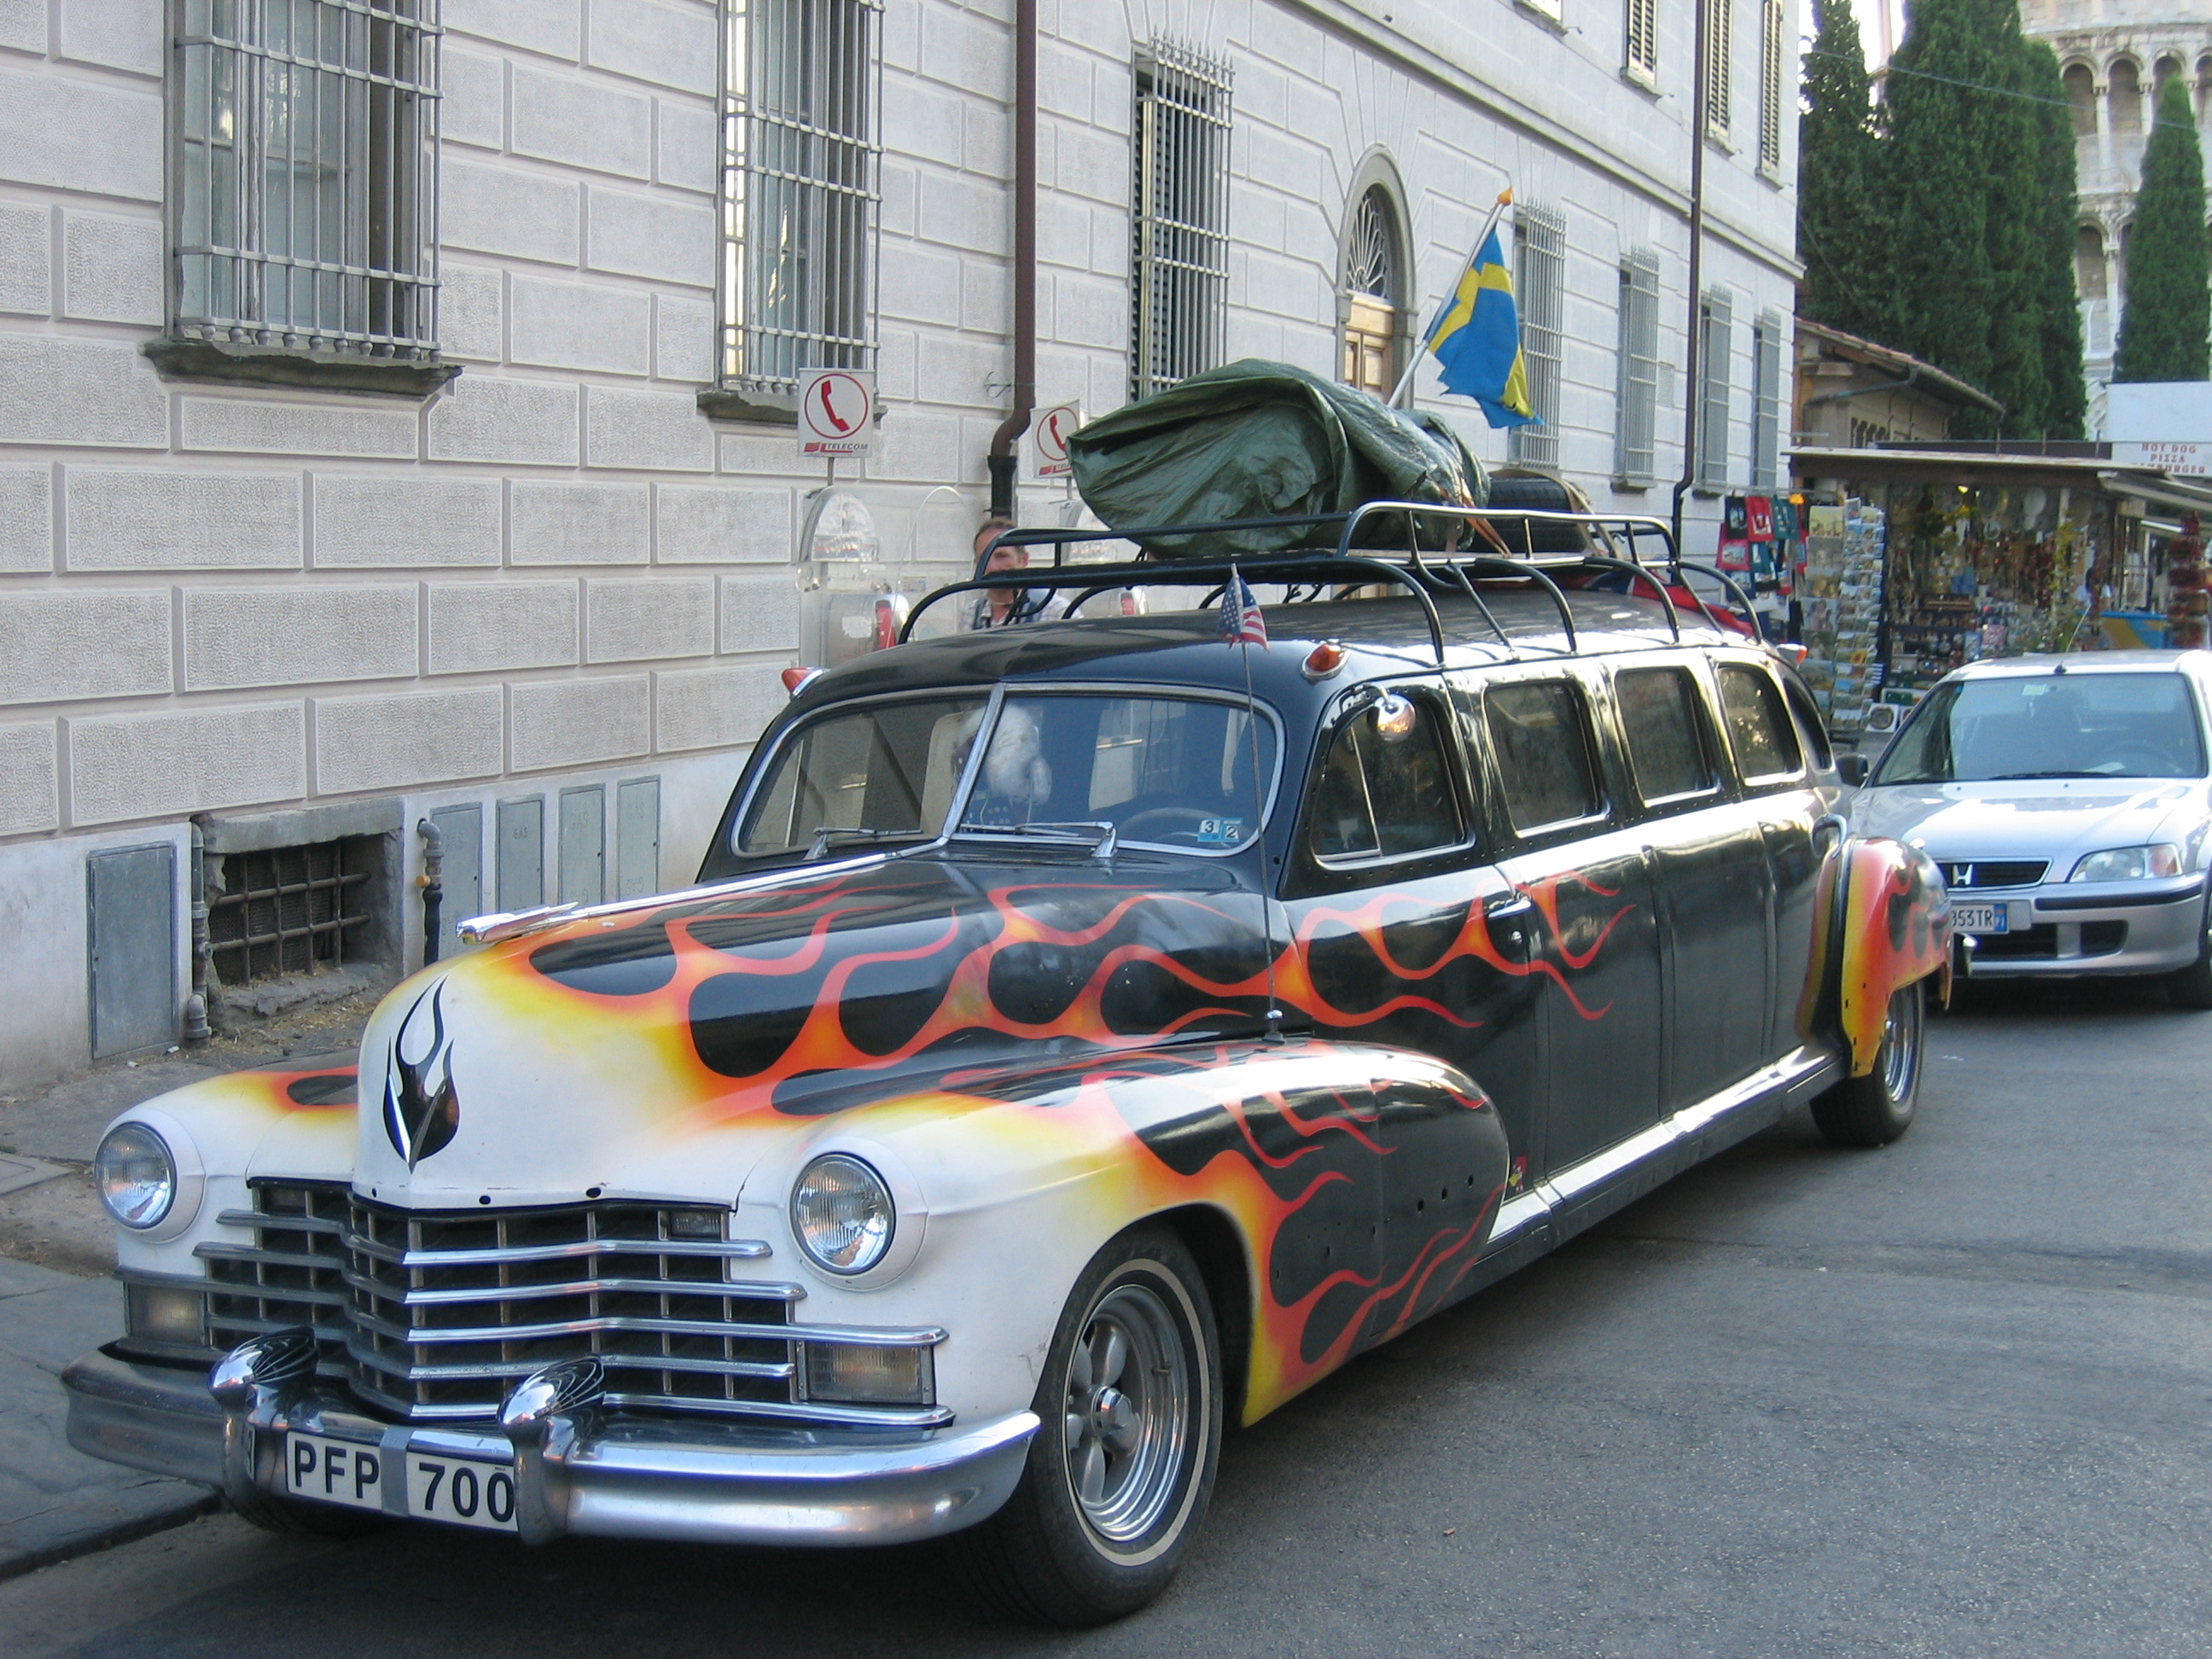 Vintage Hearses Funeral Coaches And Flower Cars On Main Street